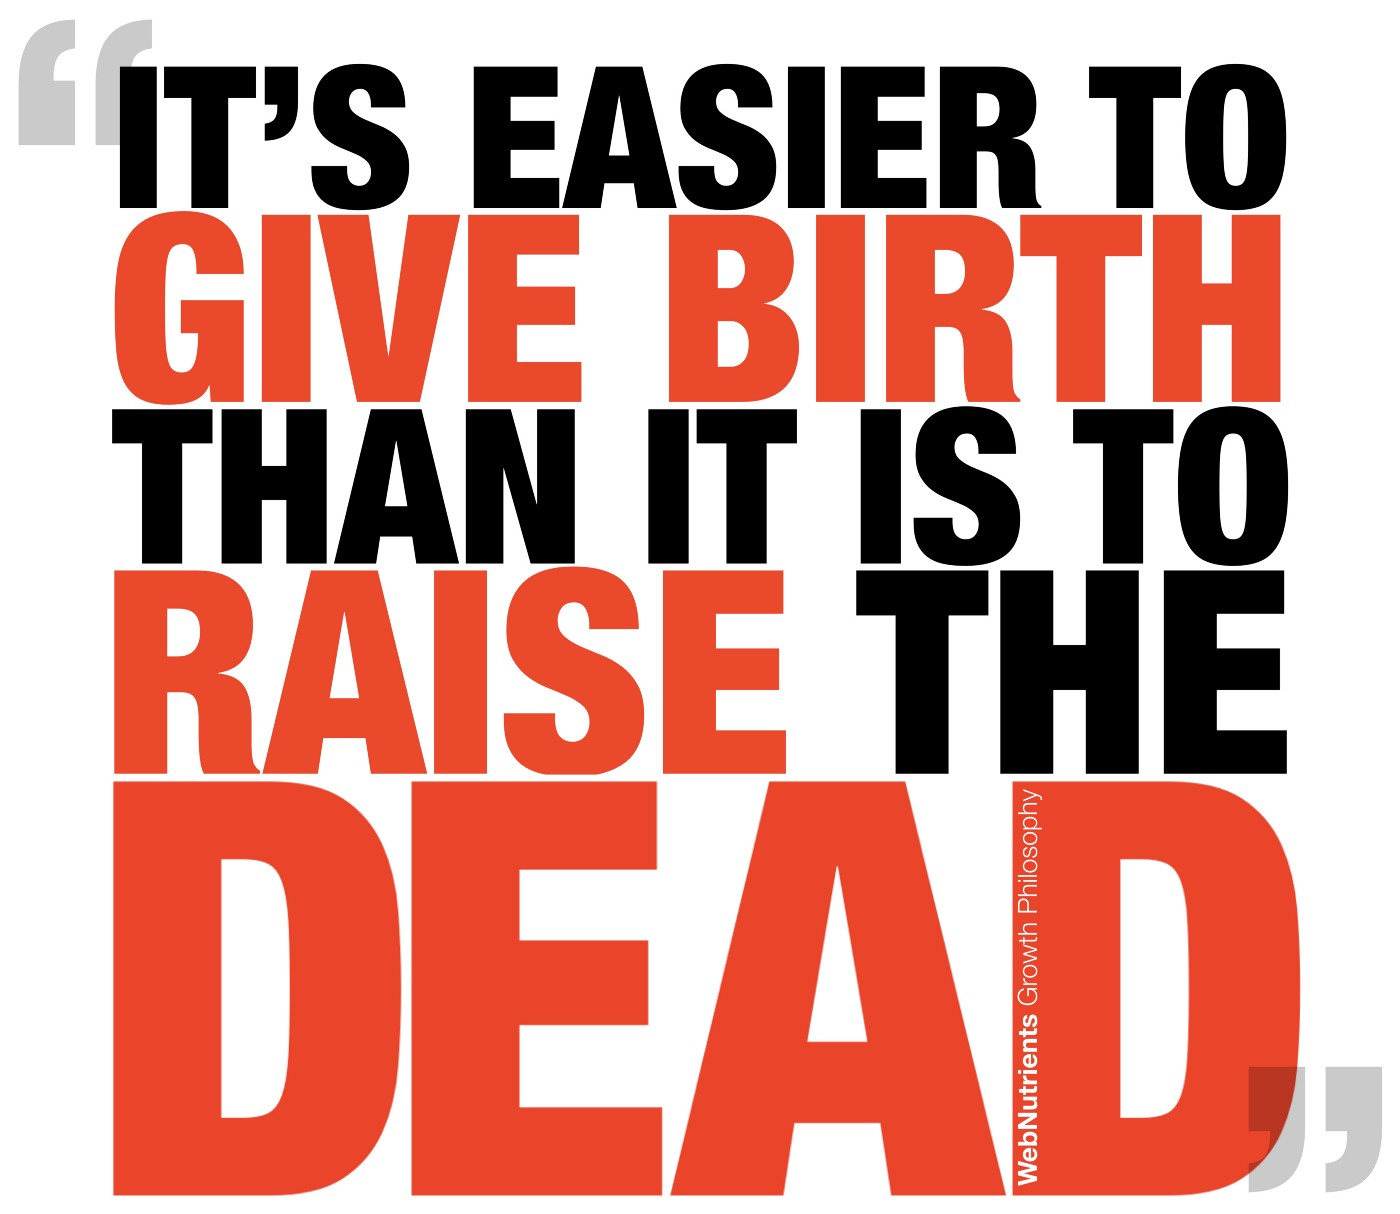 Webnutrients give birth vs raise the dead. A key to success.